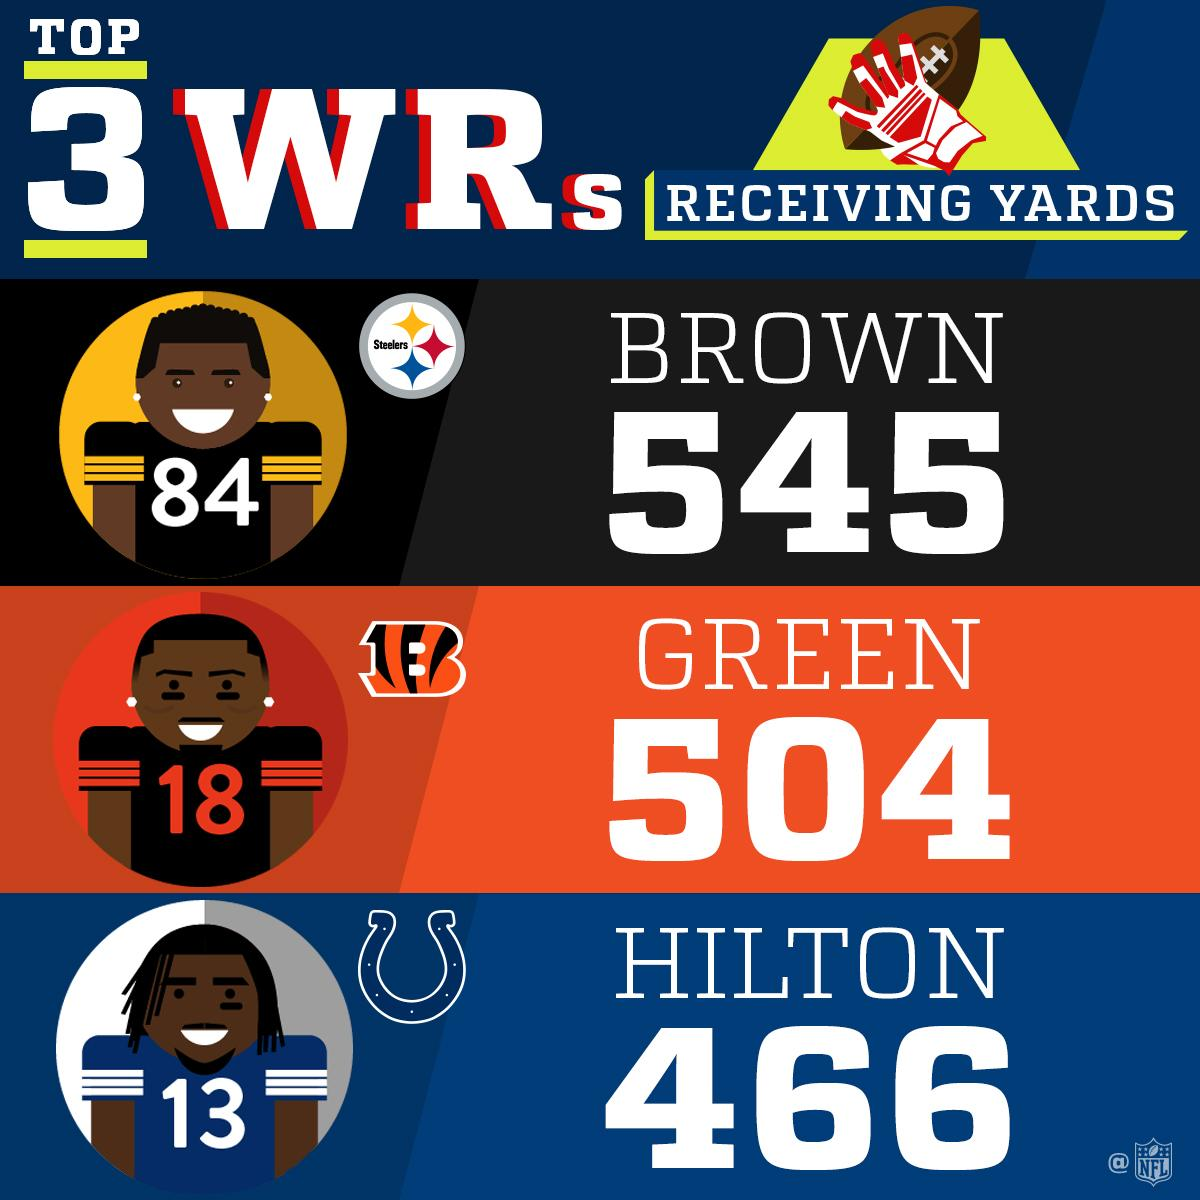 2017 Receiving Yards Leaders!  (Through Week 5) https://t.co/RVHu83a17S